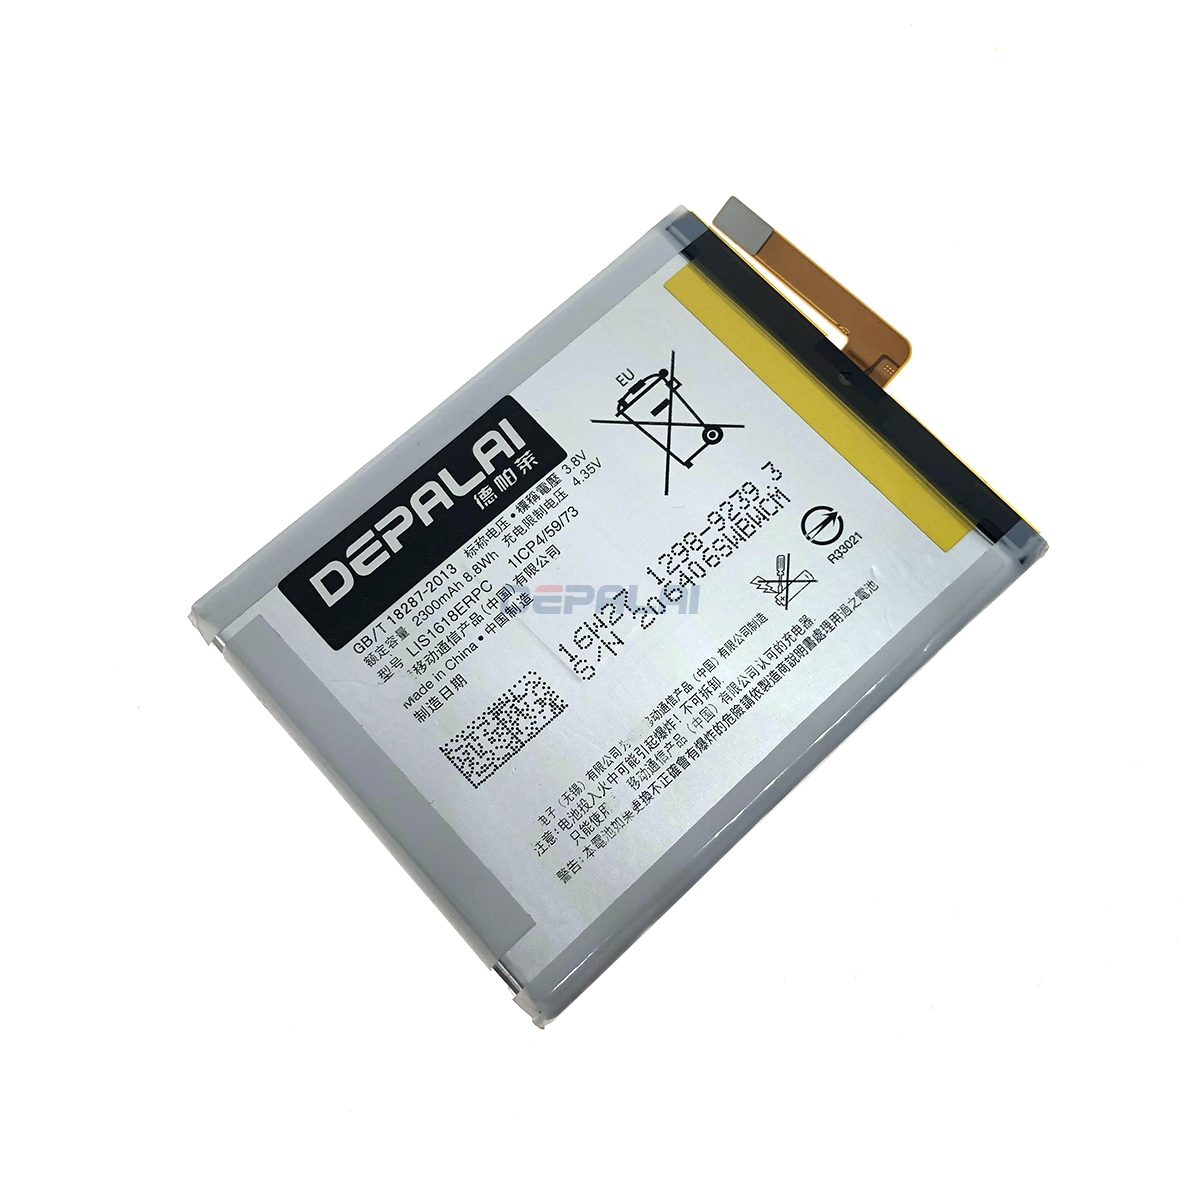 2300mAh LIS1618ERPC <font><b>Battery</b></font> for Sony <font><b>Xperia</b></font> <font><b>XA</b></font> F3111 F3112 E5 F3116 F3115 F3311 F3313 <font><b>Battery</b></font> Replacement image